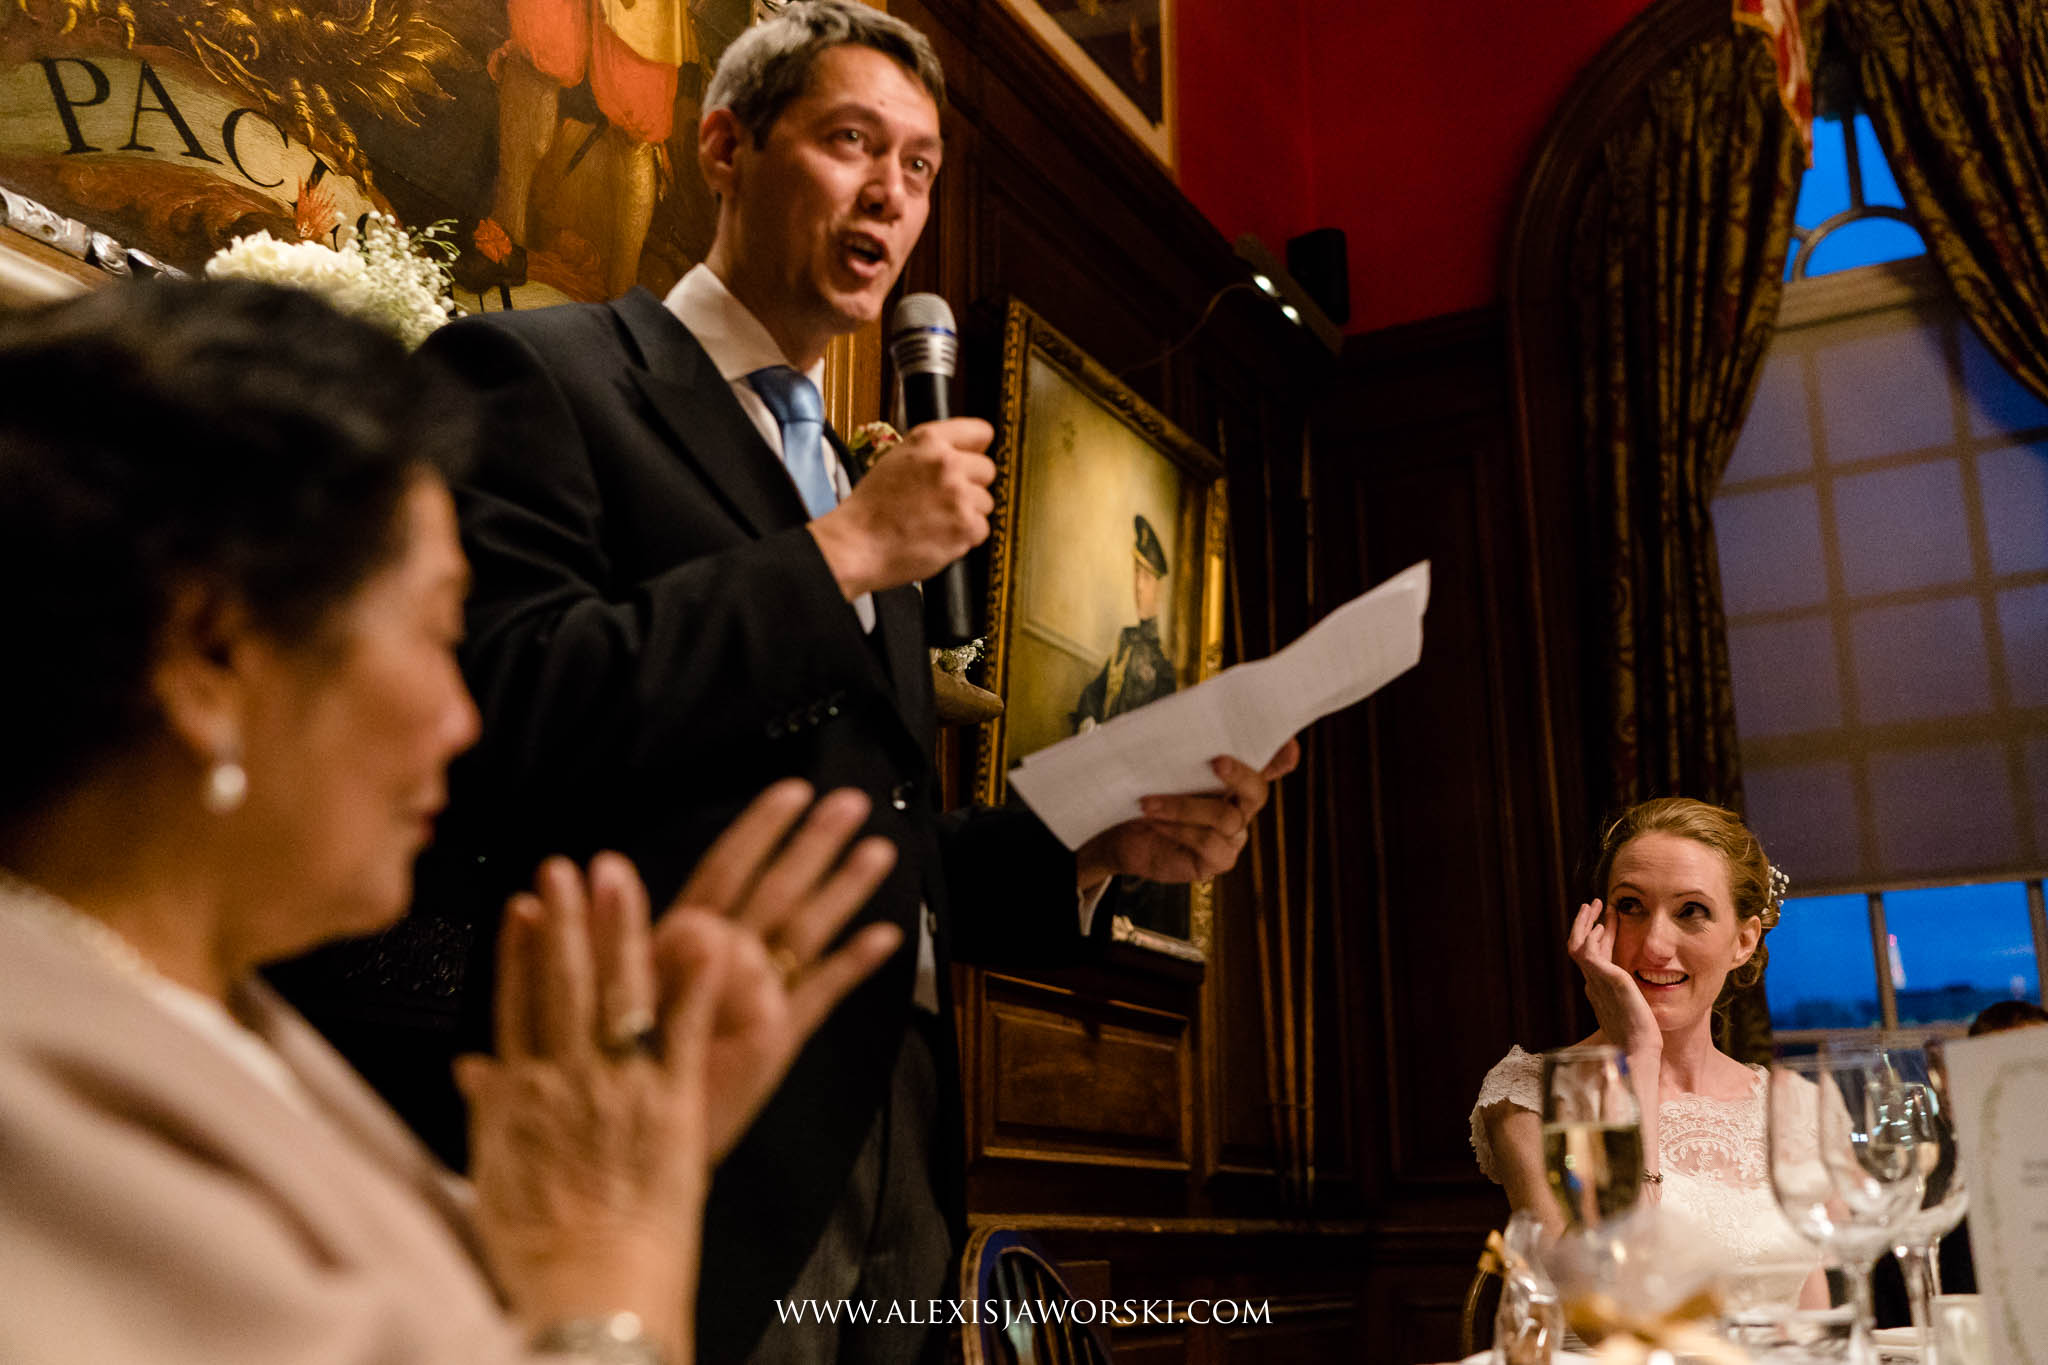 the wedding breakfast and speeches